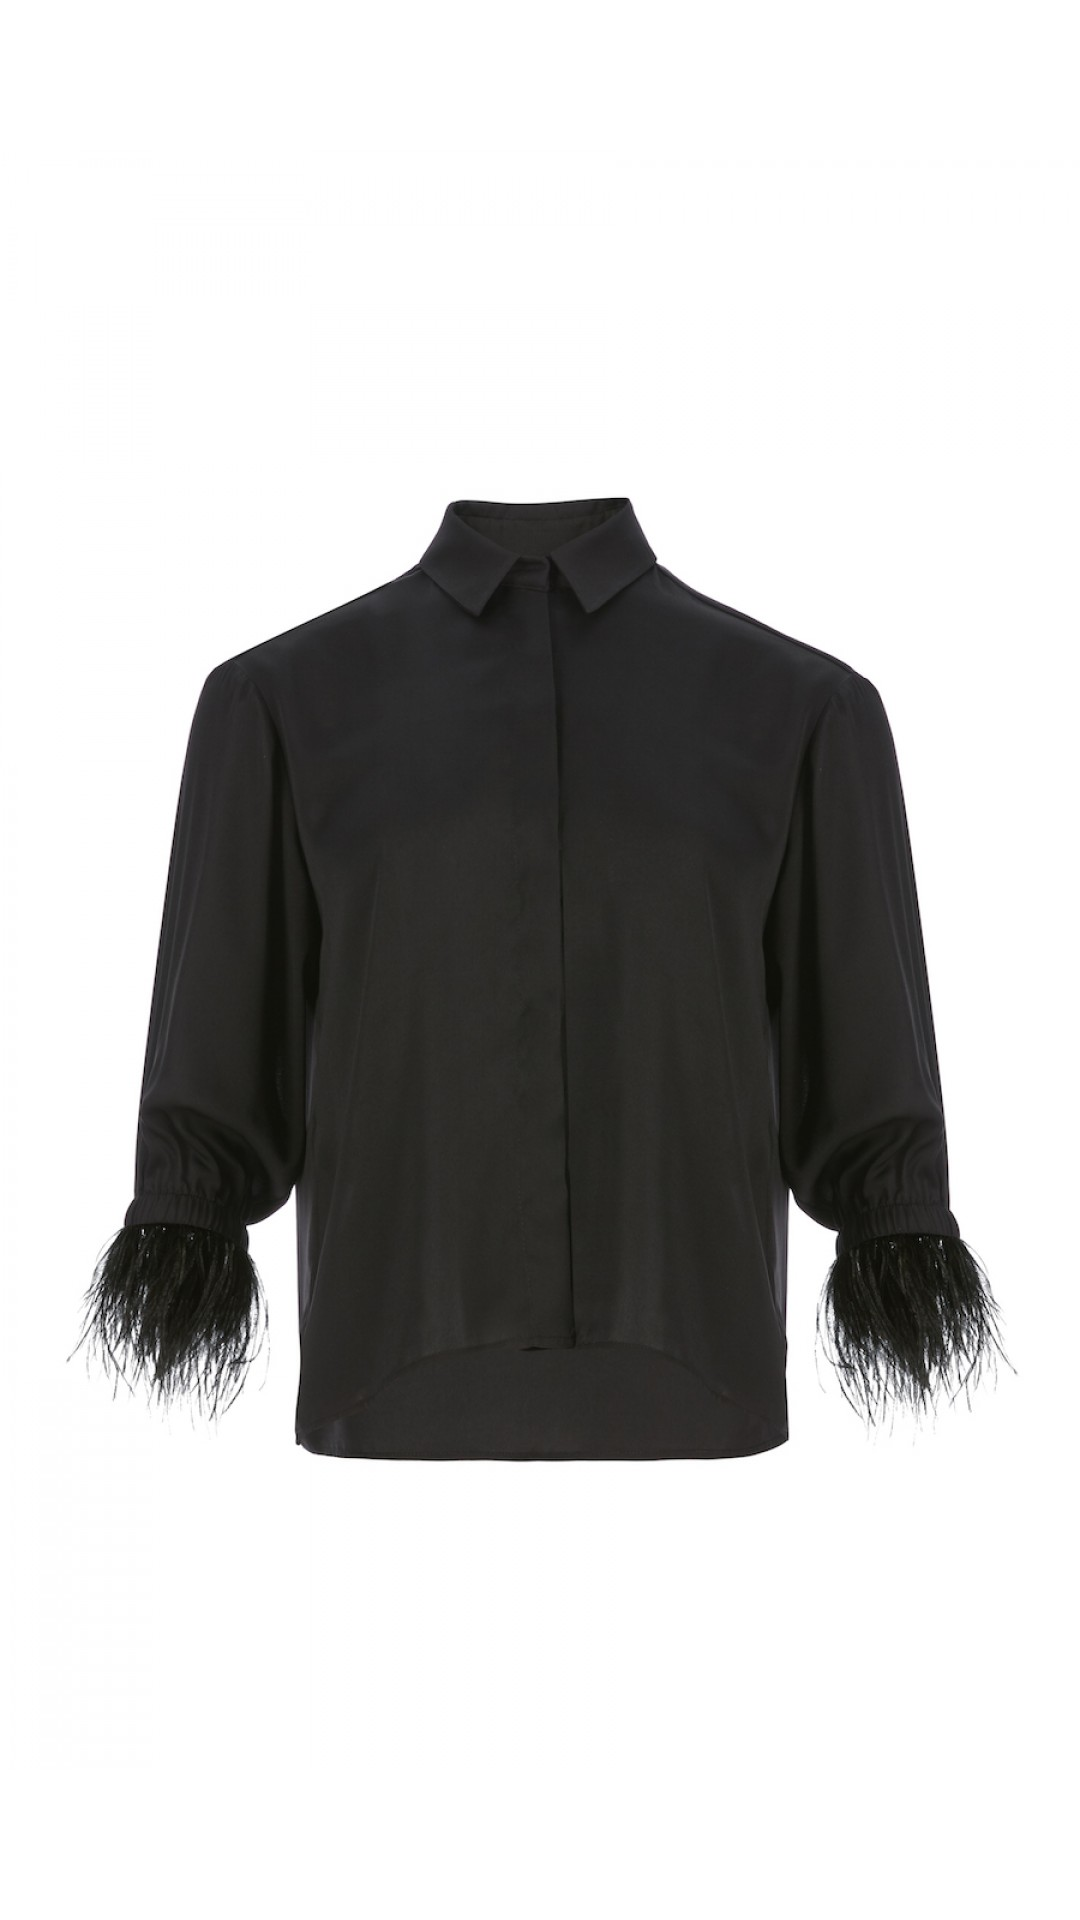 BLACK SHIRT WITH FEATHER DETAILS